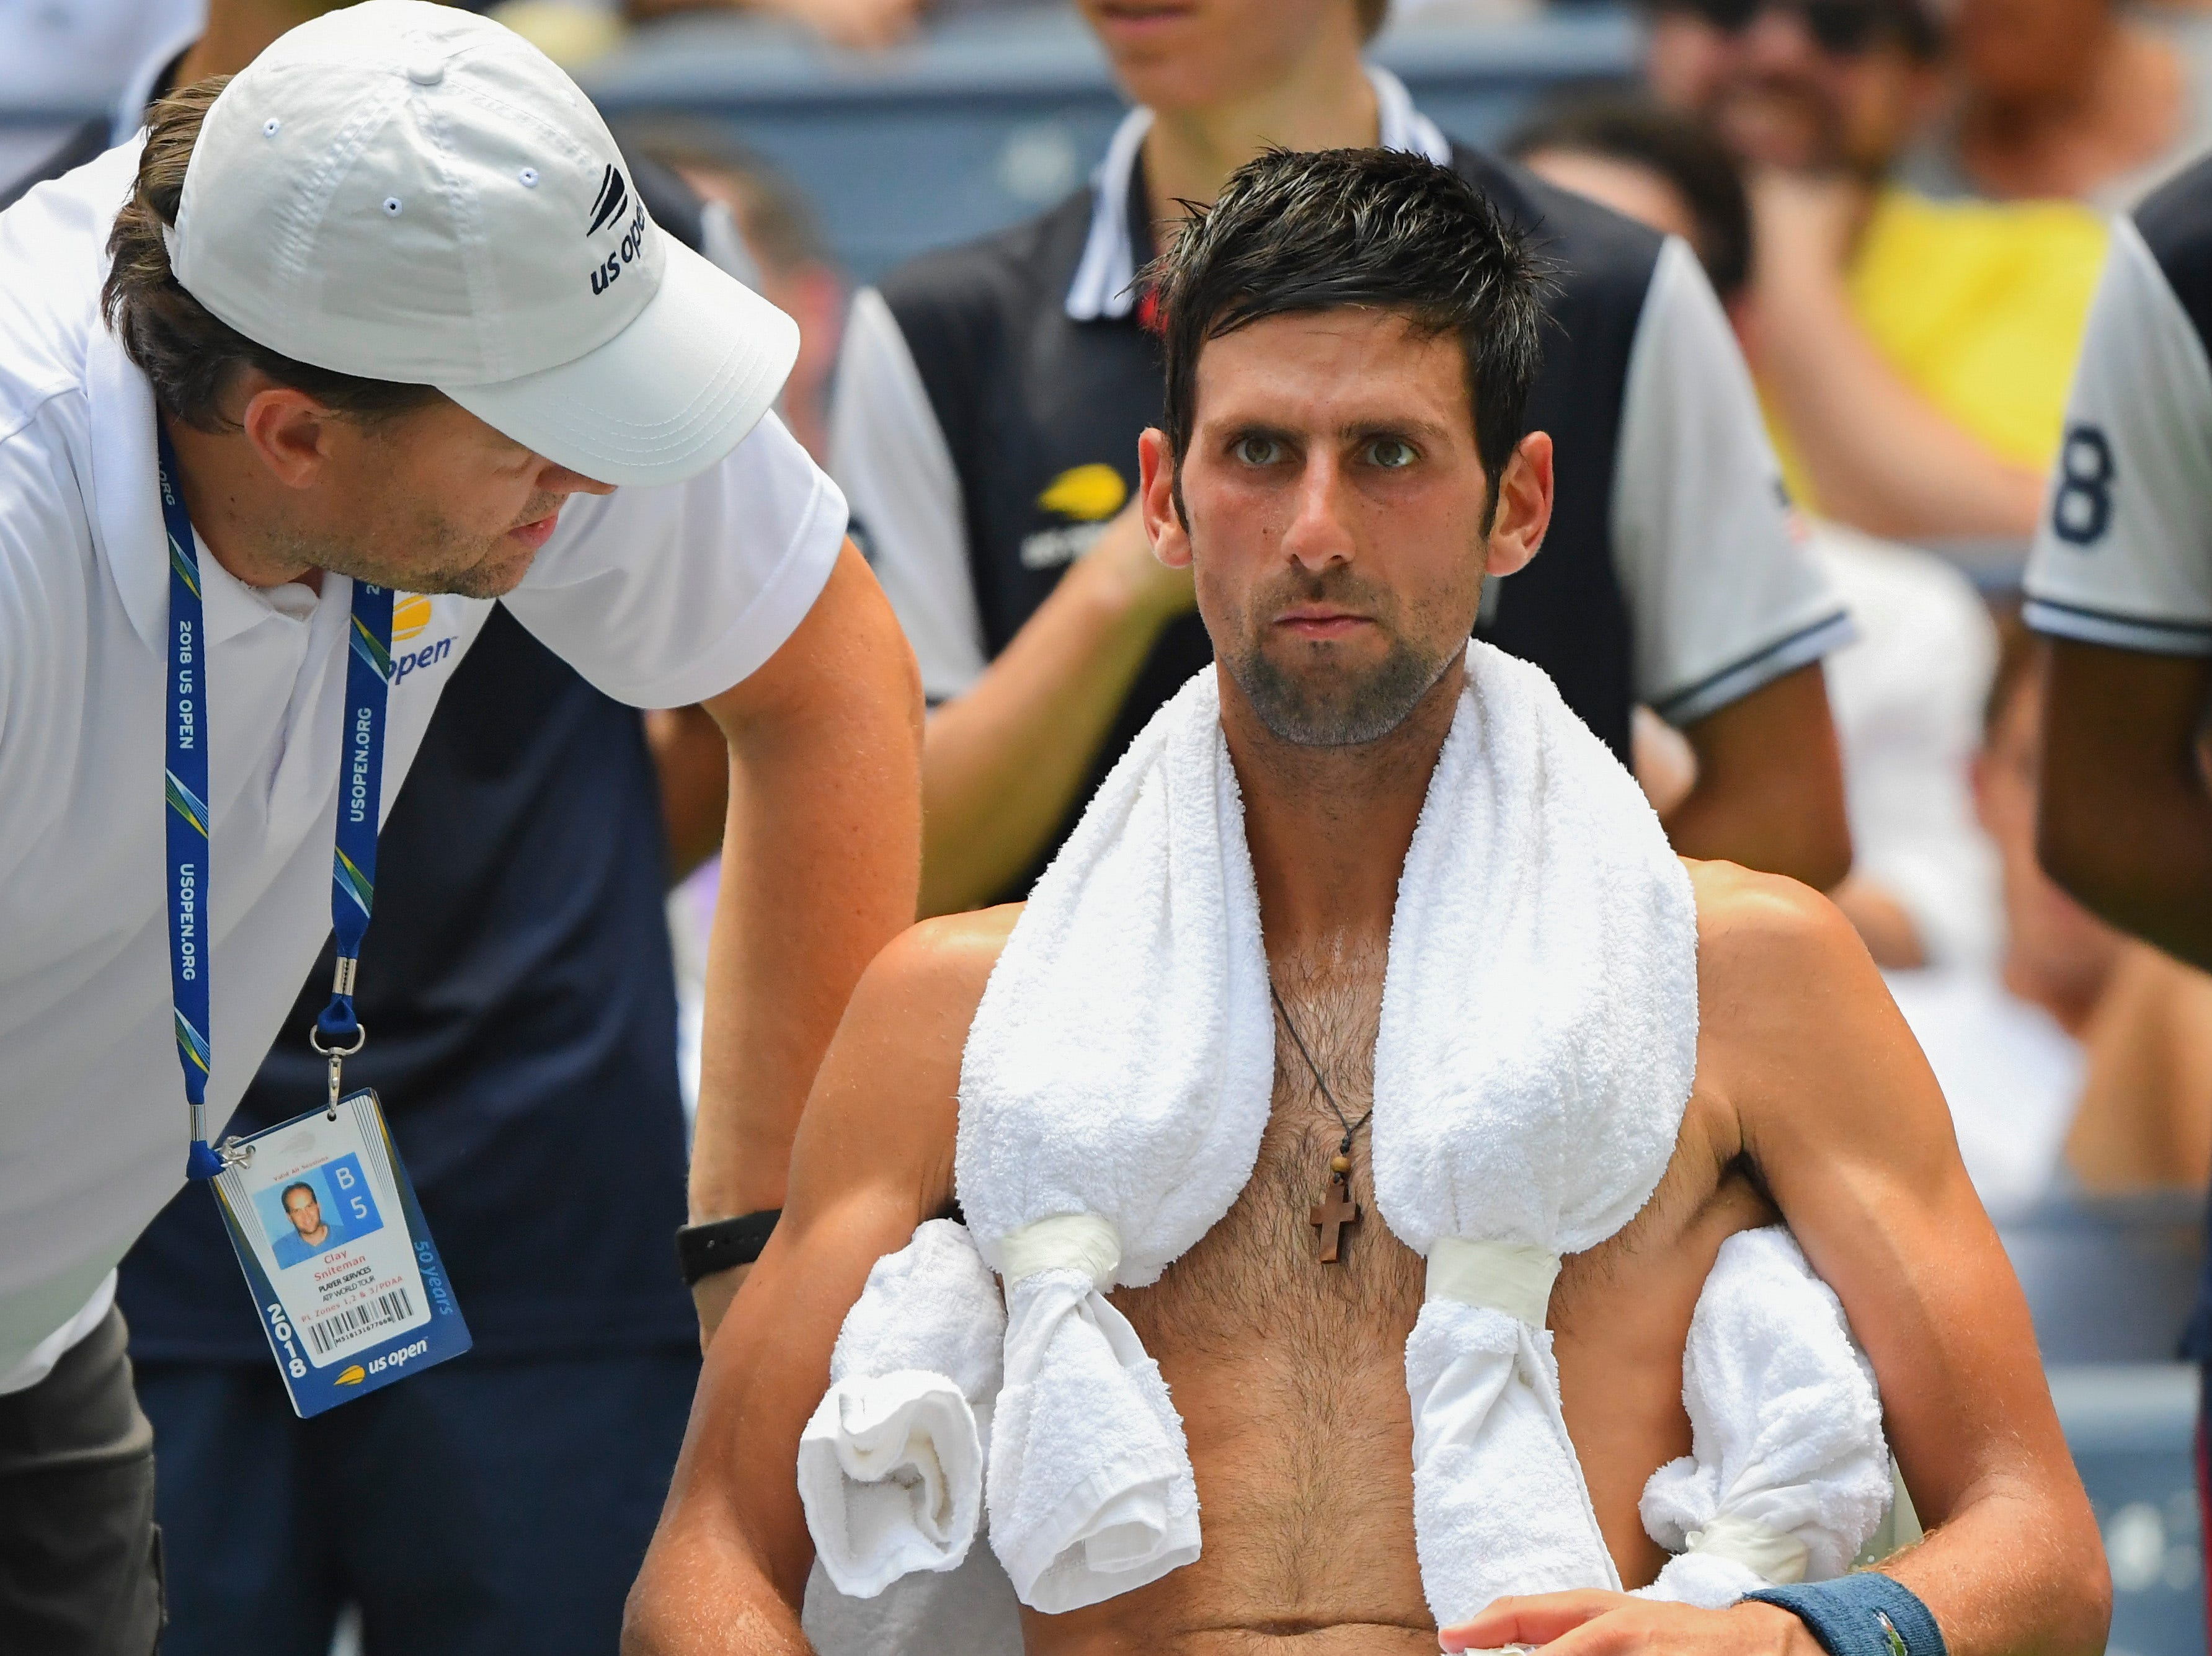 Novak Djokovic copes with the extreme heat while playing Marton Fucsovics.